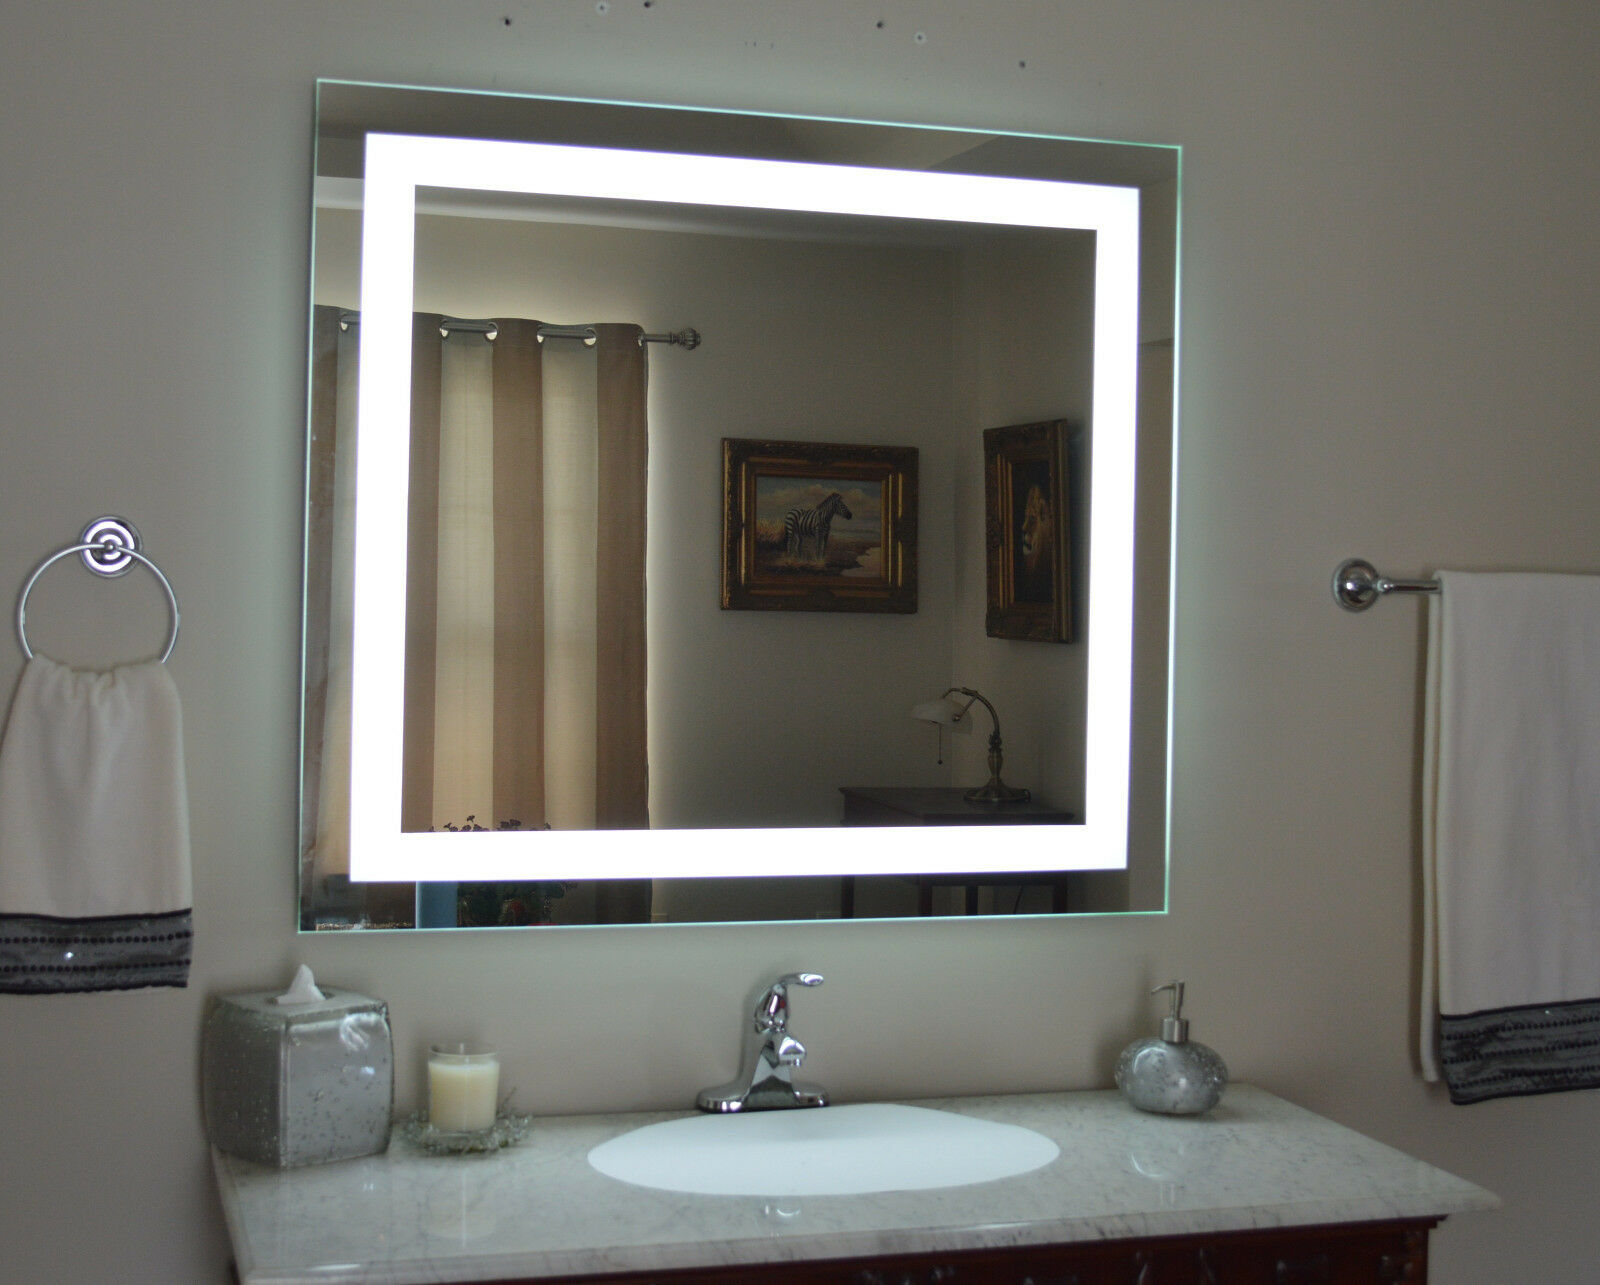 Lighted bathroom vanity mirrors - Lighted Bathroom Vanity Mirror Led Wall Mounted 48 Wide X 36 Tall Mam84836